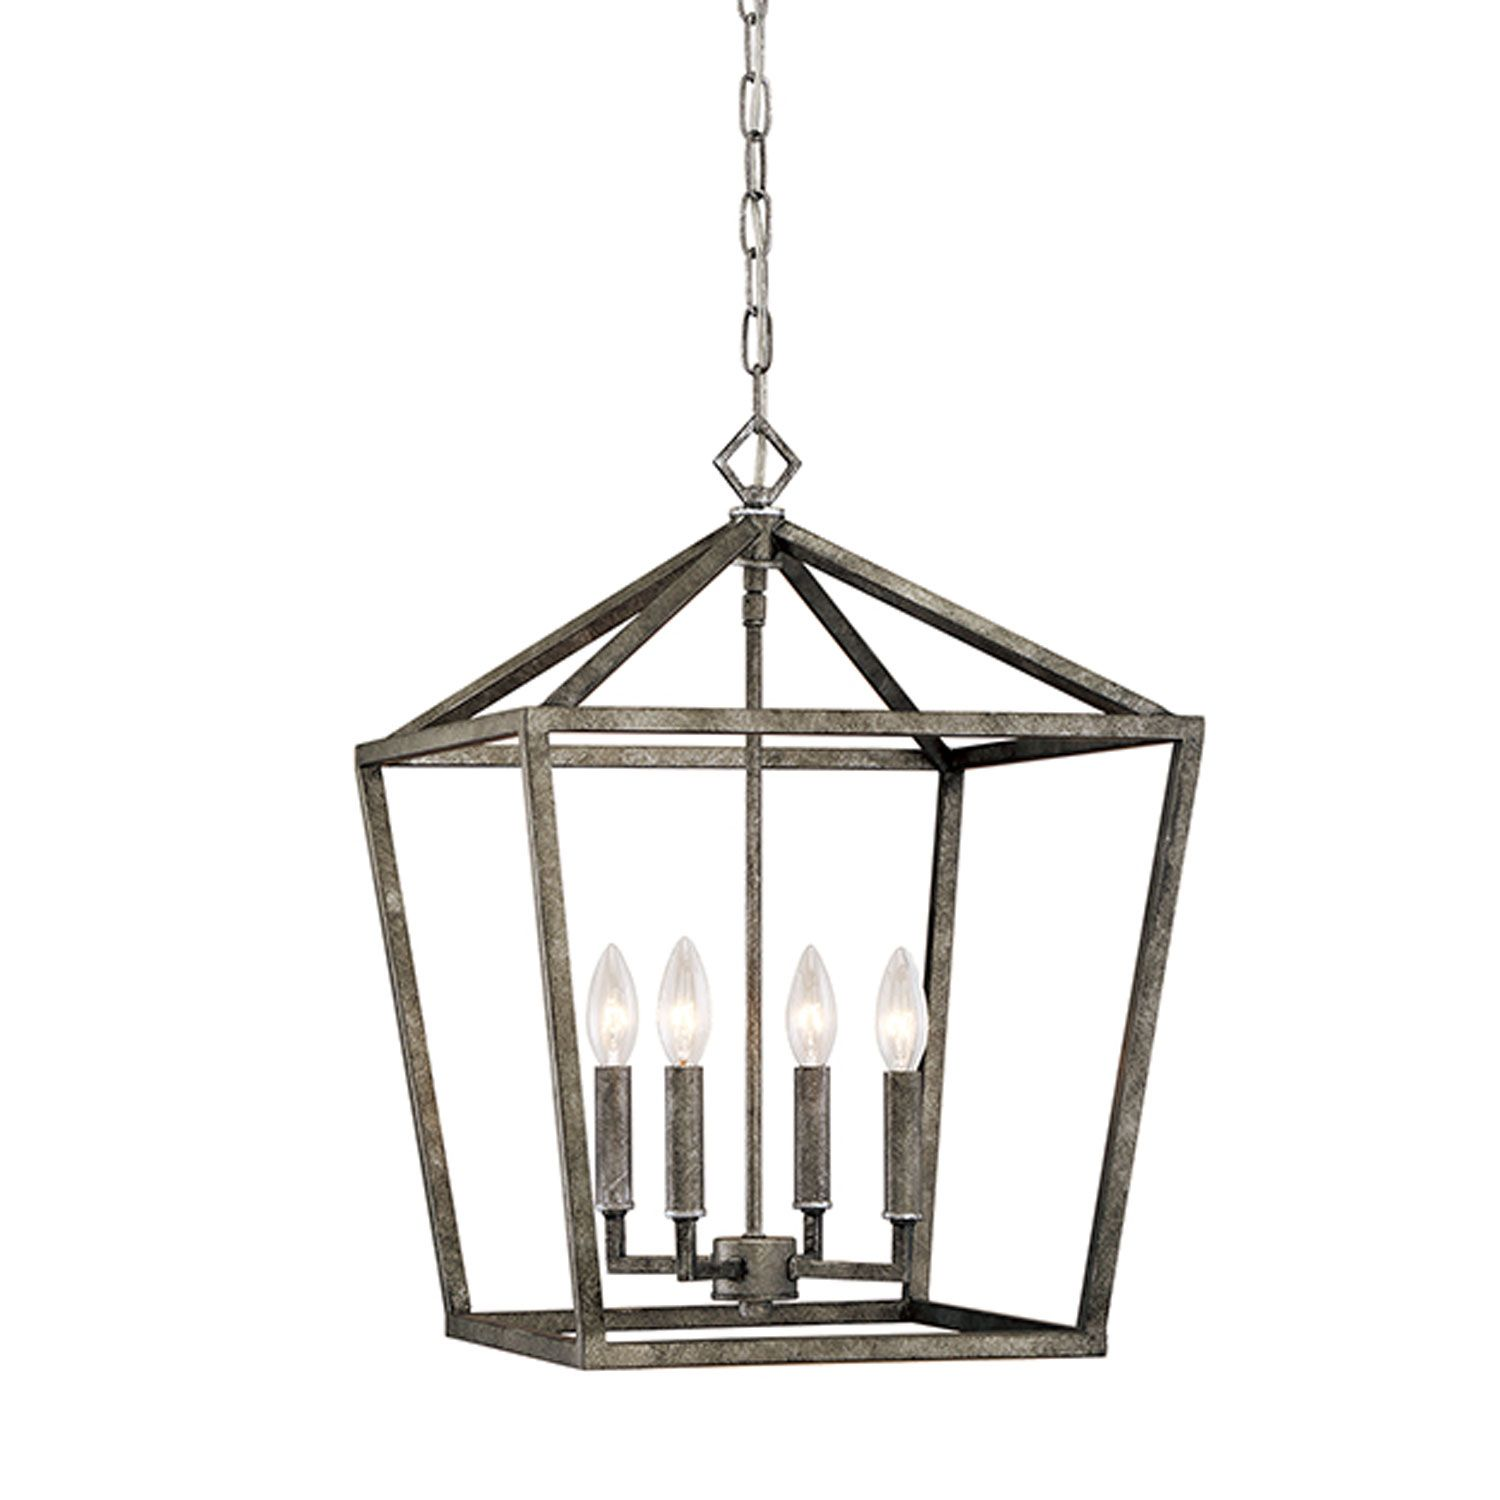 uk over orbit lantern kitchen beautiful design dining light quatrefoil full s rustic lowes fixtures size home lighting orb lights chandelier room pendant island for indoor of black pe farmhouse